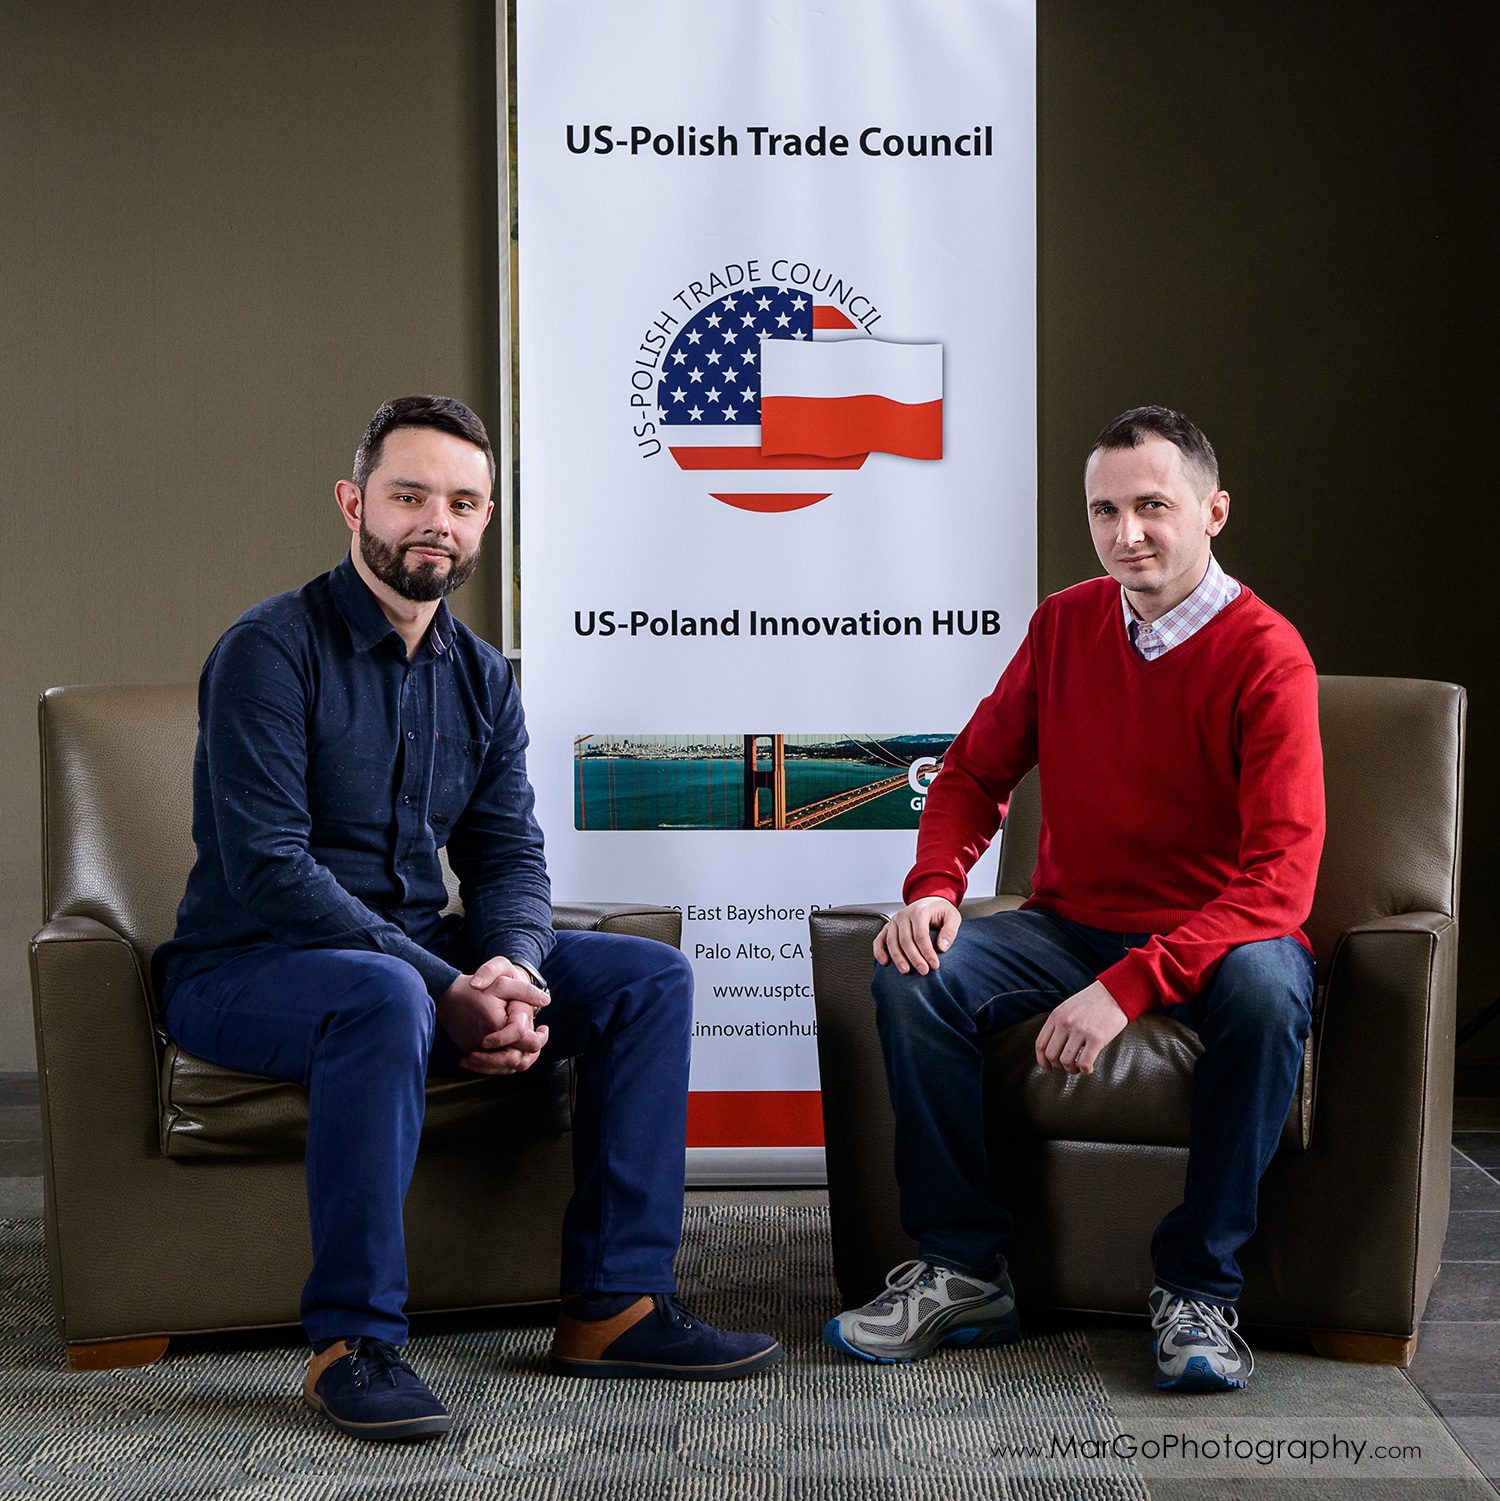 business portrait of two men sitting on the chairs